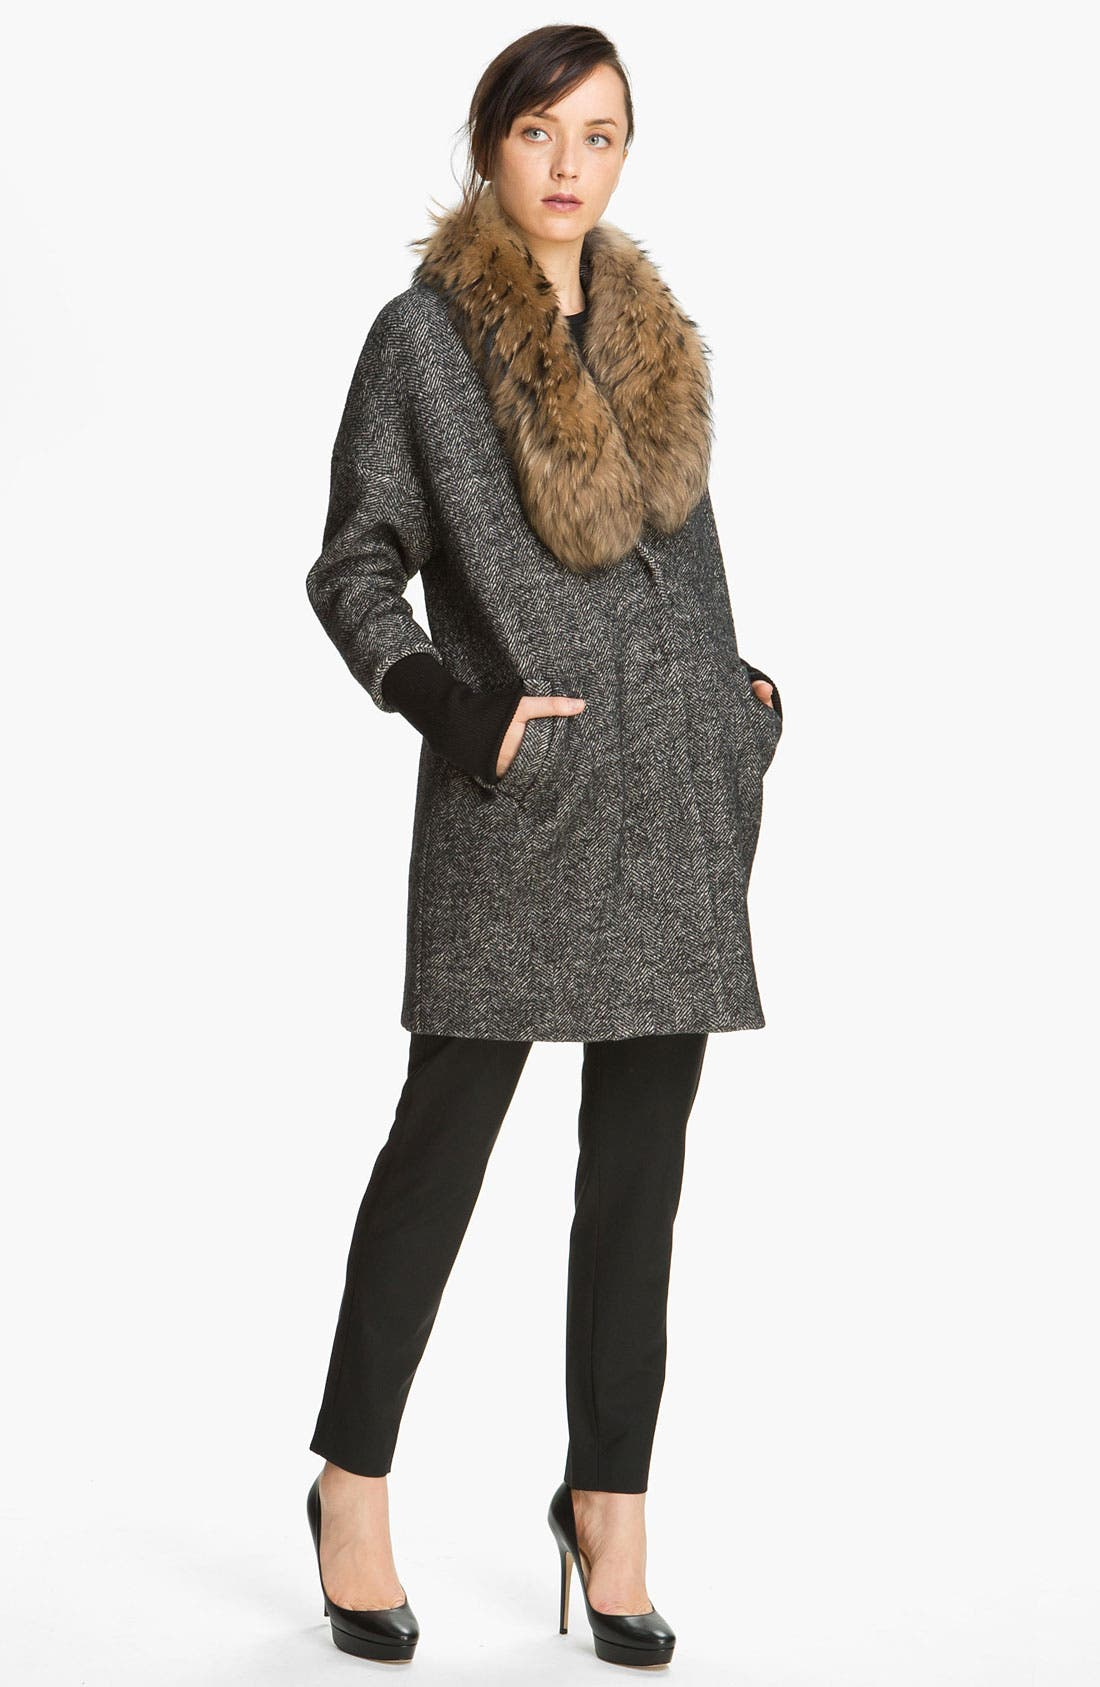 Alternate Image 1 Selected - Elizabeth and James 'Valentia' Herringbone Coat with Removable Fur Collar